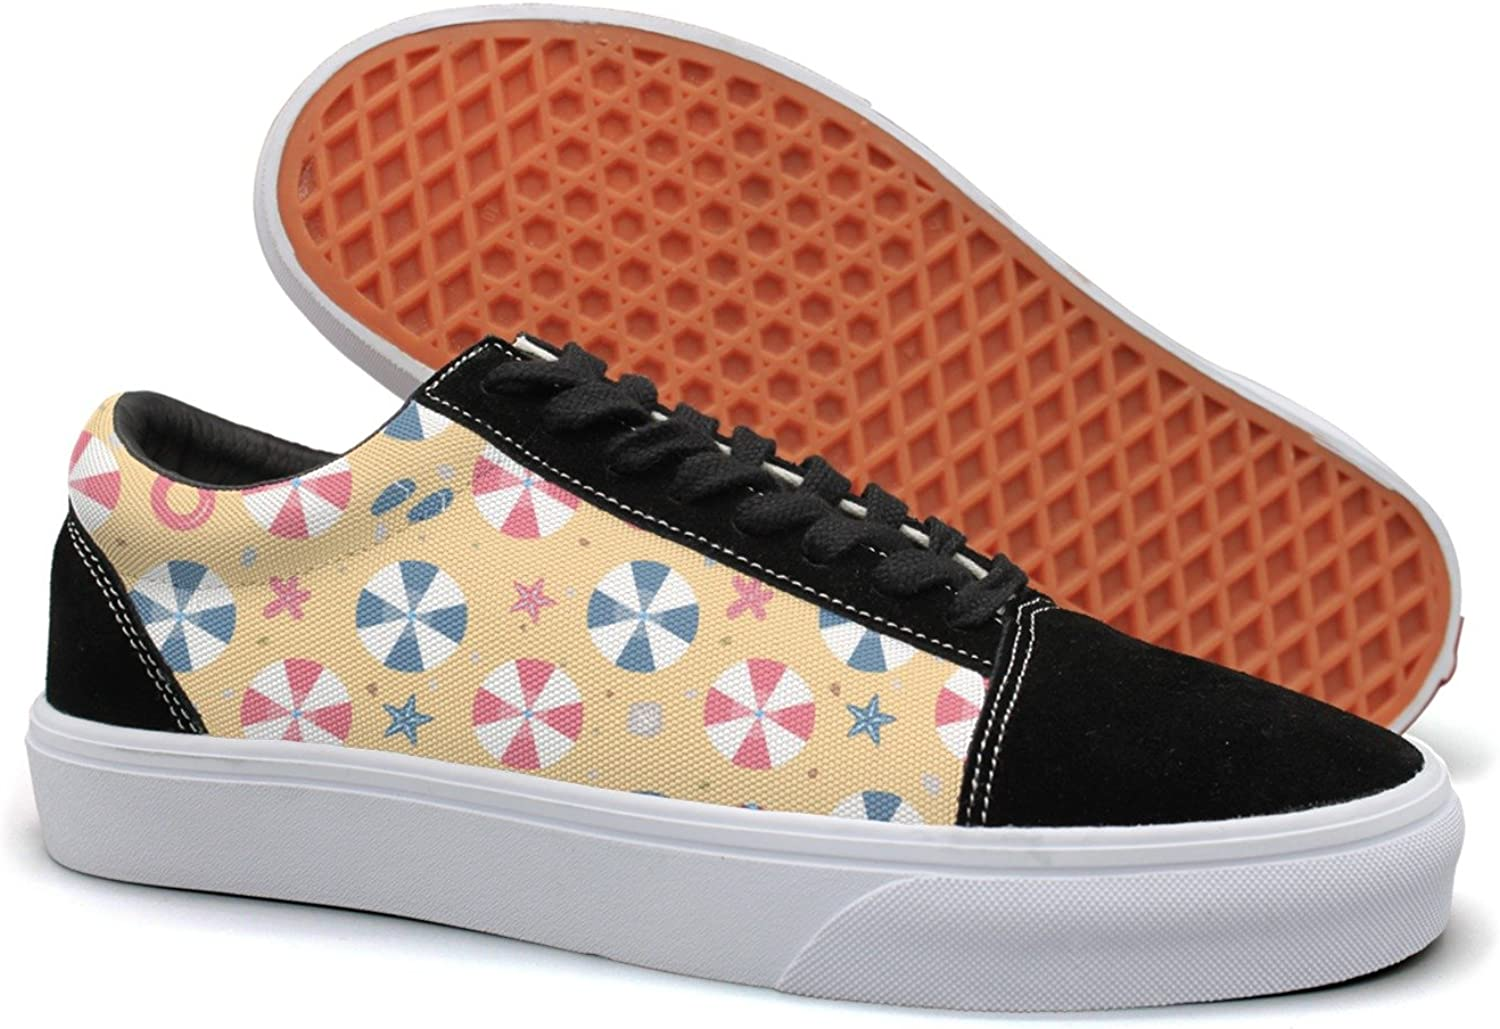 Feenfling Summer Miami Beach colorful Design Womens Fashion Suede Canvas Low Top Running shoes